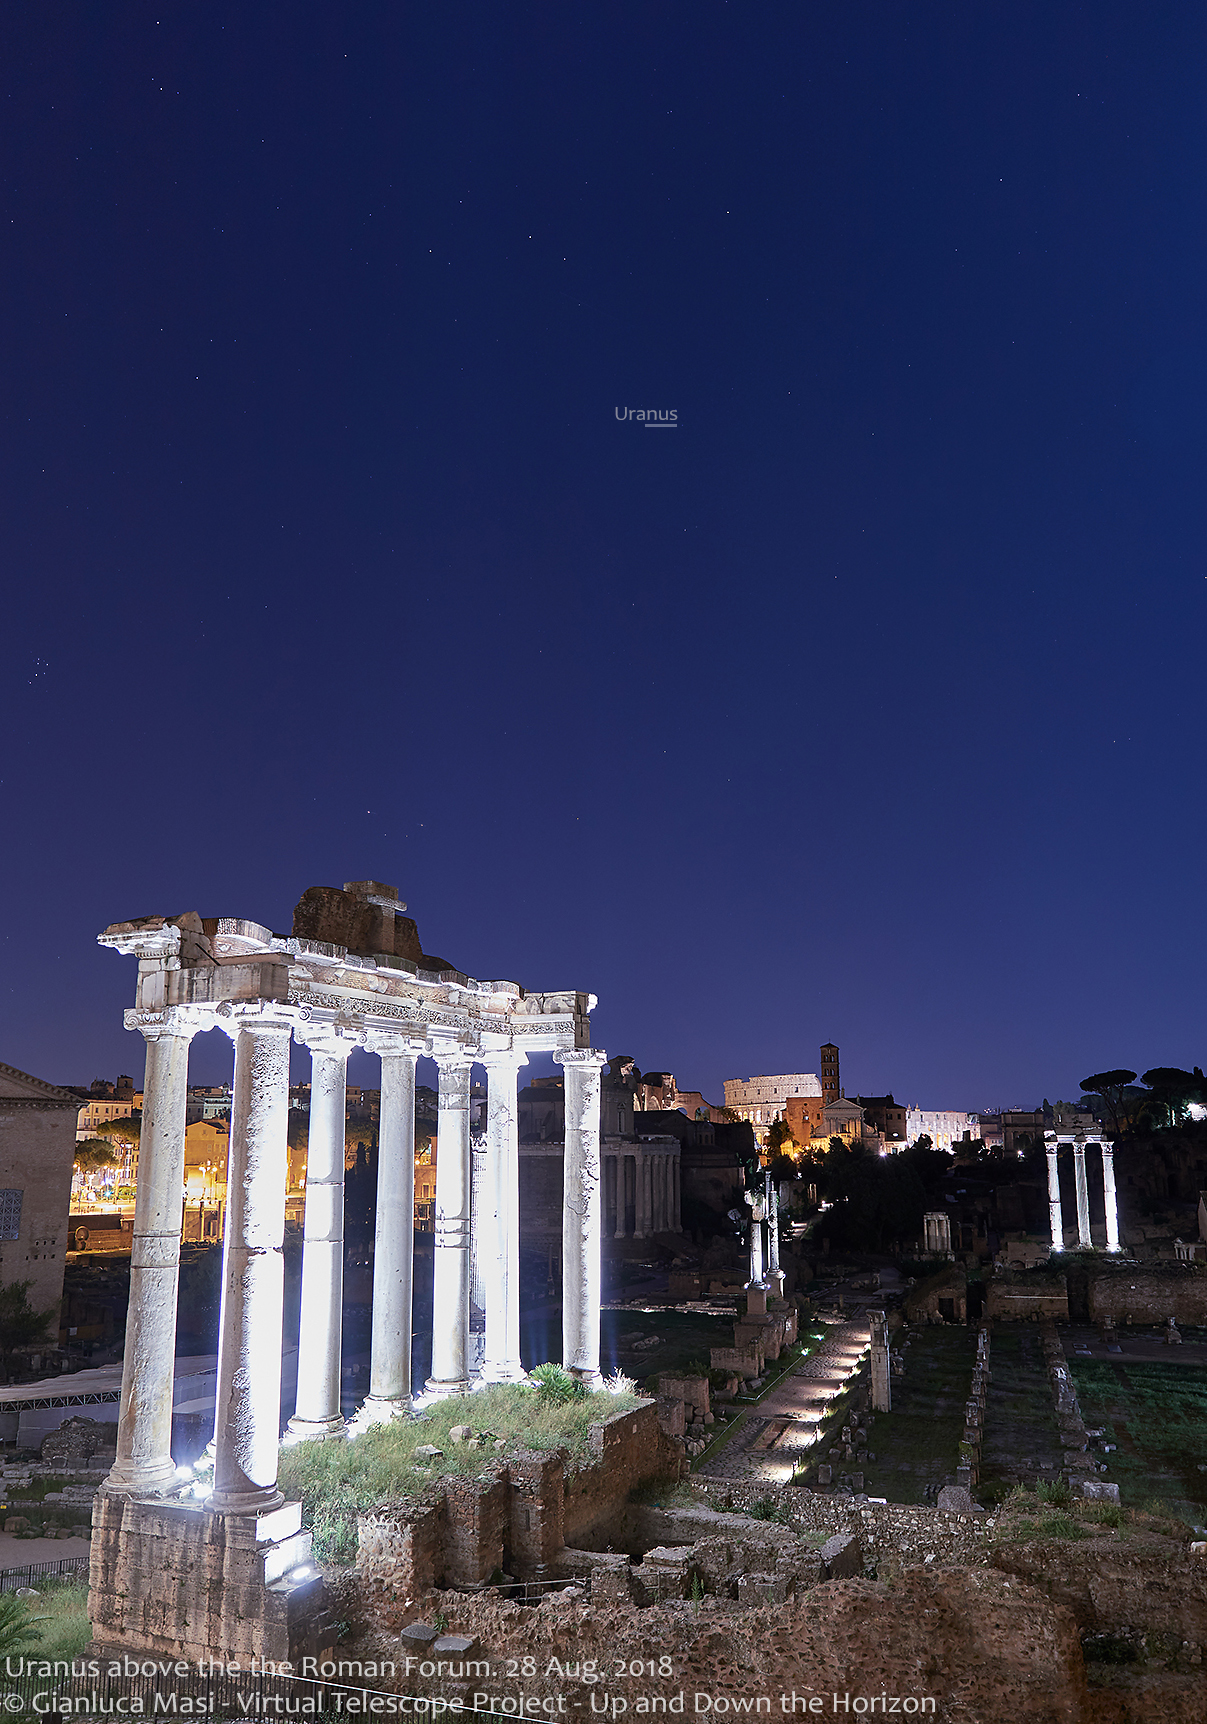 Uranus is discreetly shining above the Roman Forum, with the Pleiades visible on the left - 28 Aug. 2018